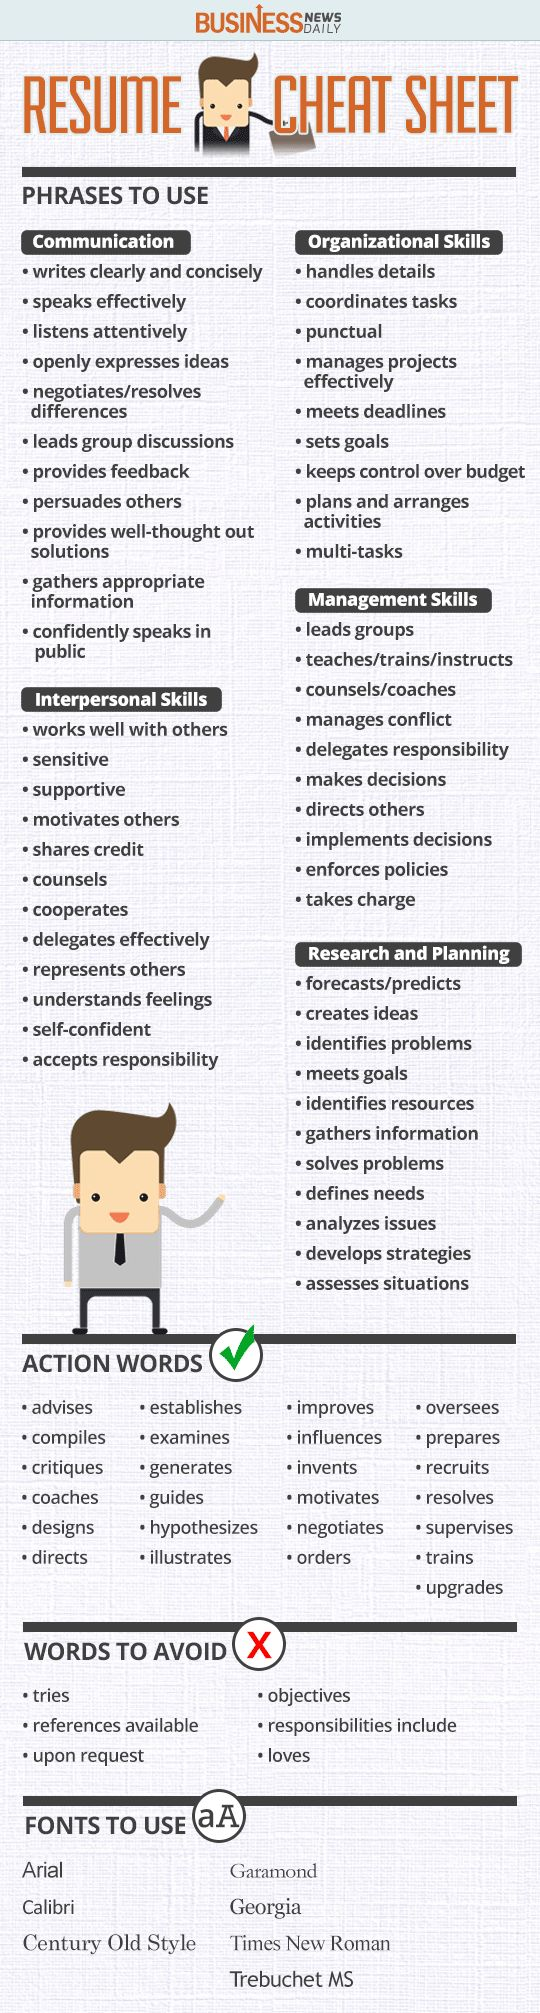 positive words for resumes